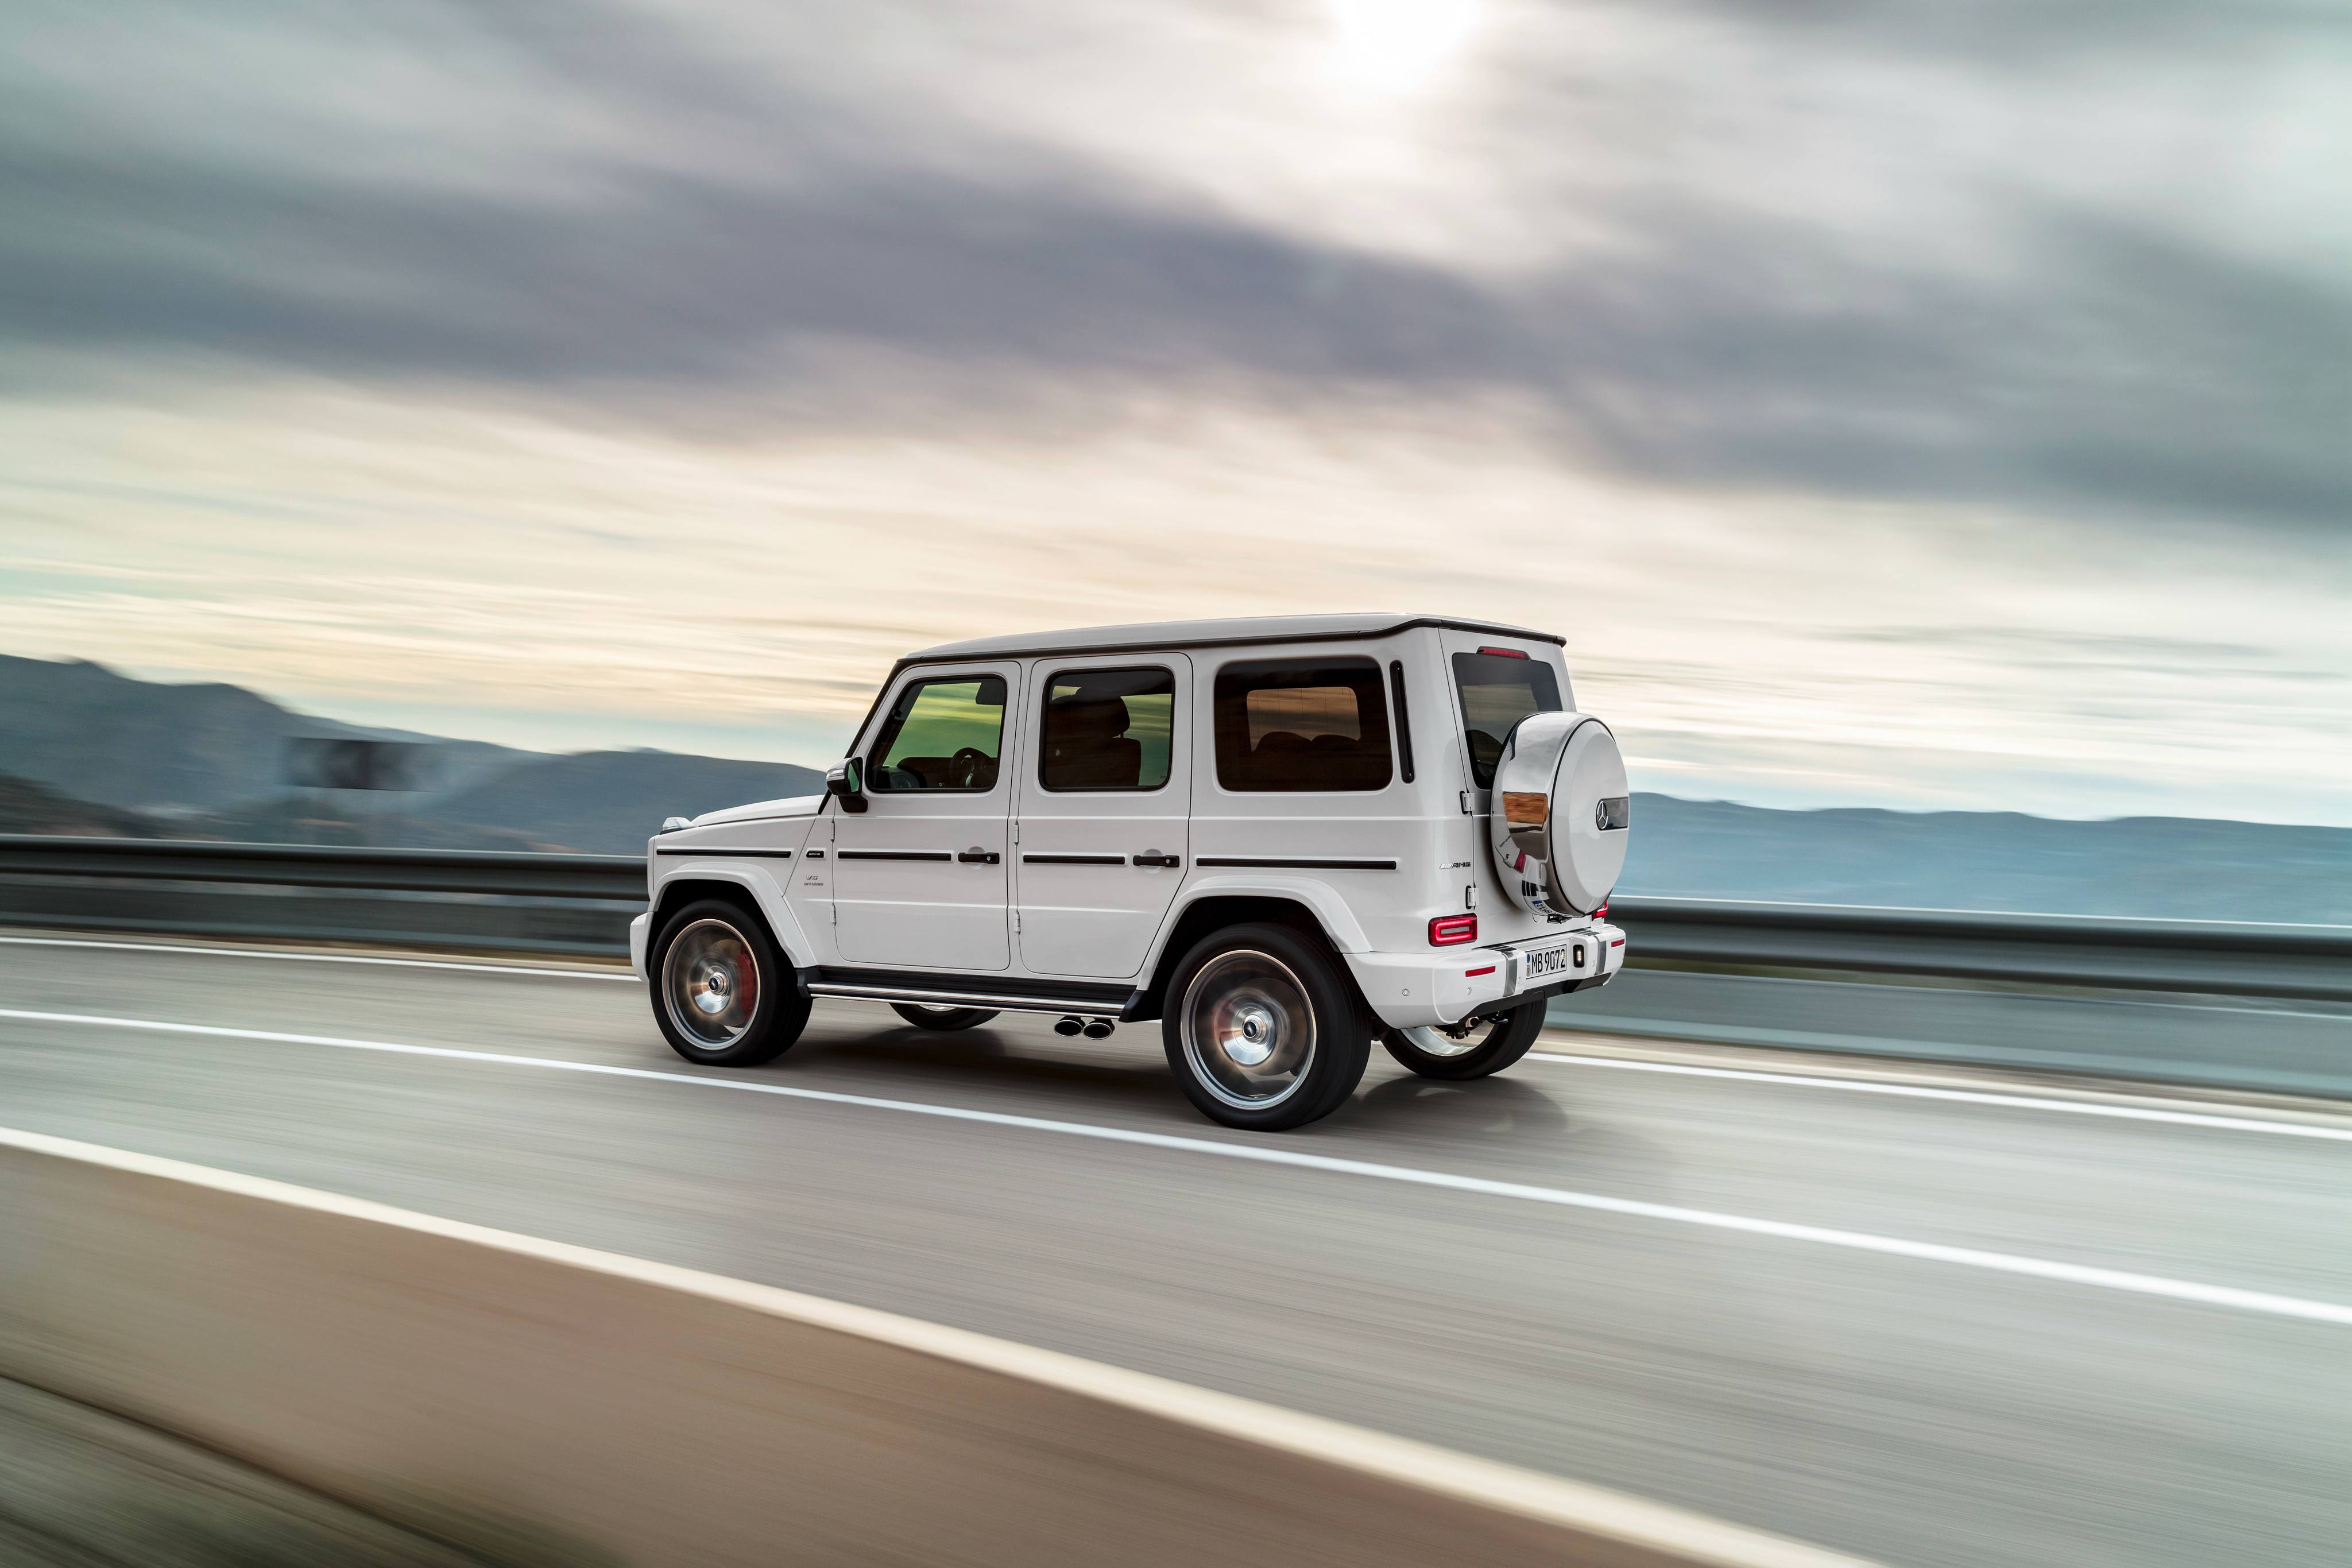 Mercedes AMG G 63 2018 4k, HD Cars, 4k Wallpapers, Images ...